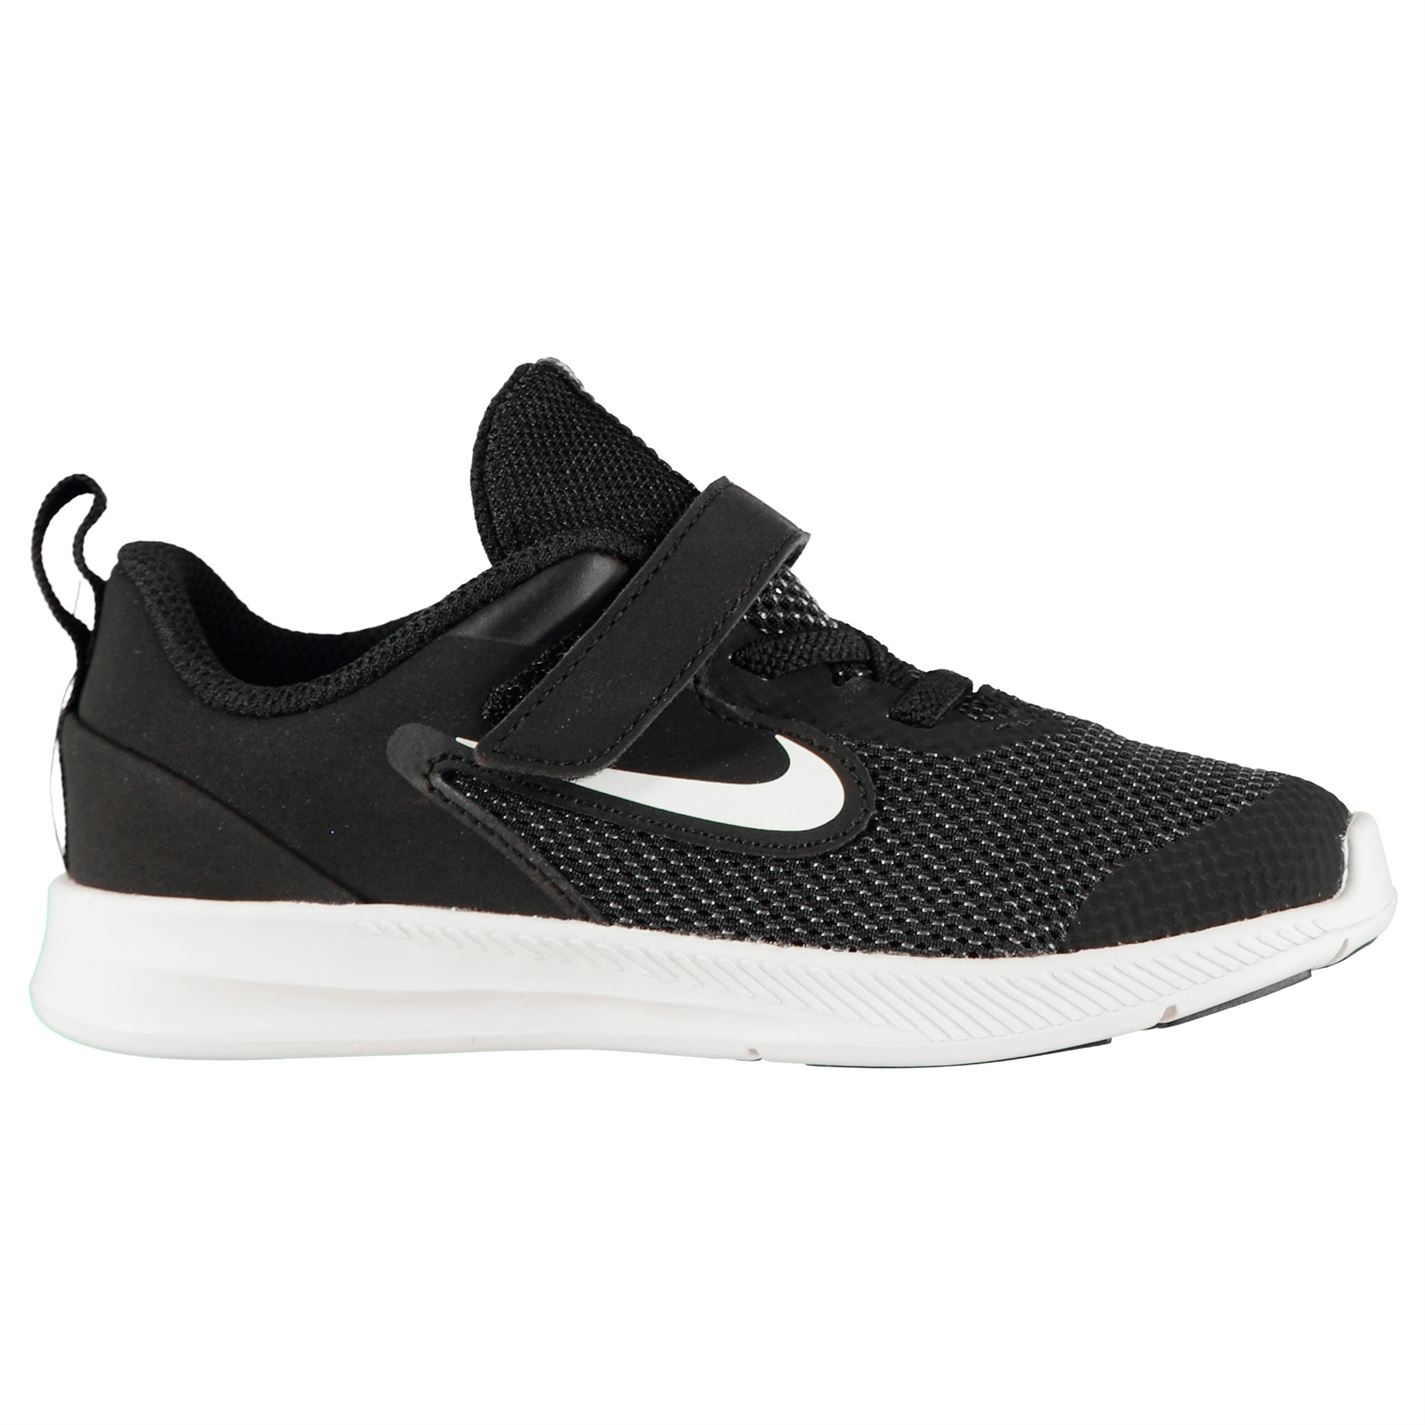 Nike Downshifter 9 Infant/Toddler Shoe BLACK/WHITE-ANTHRACITE-COOL GR